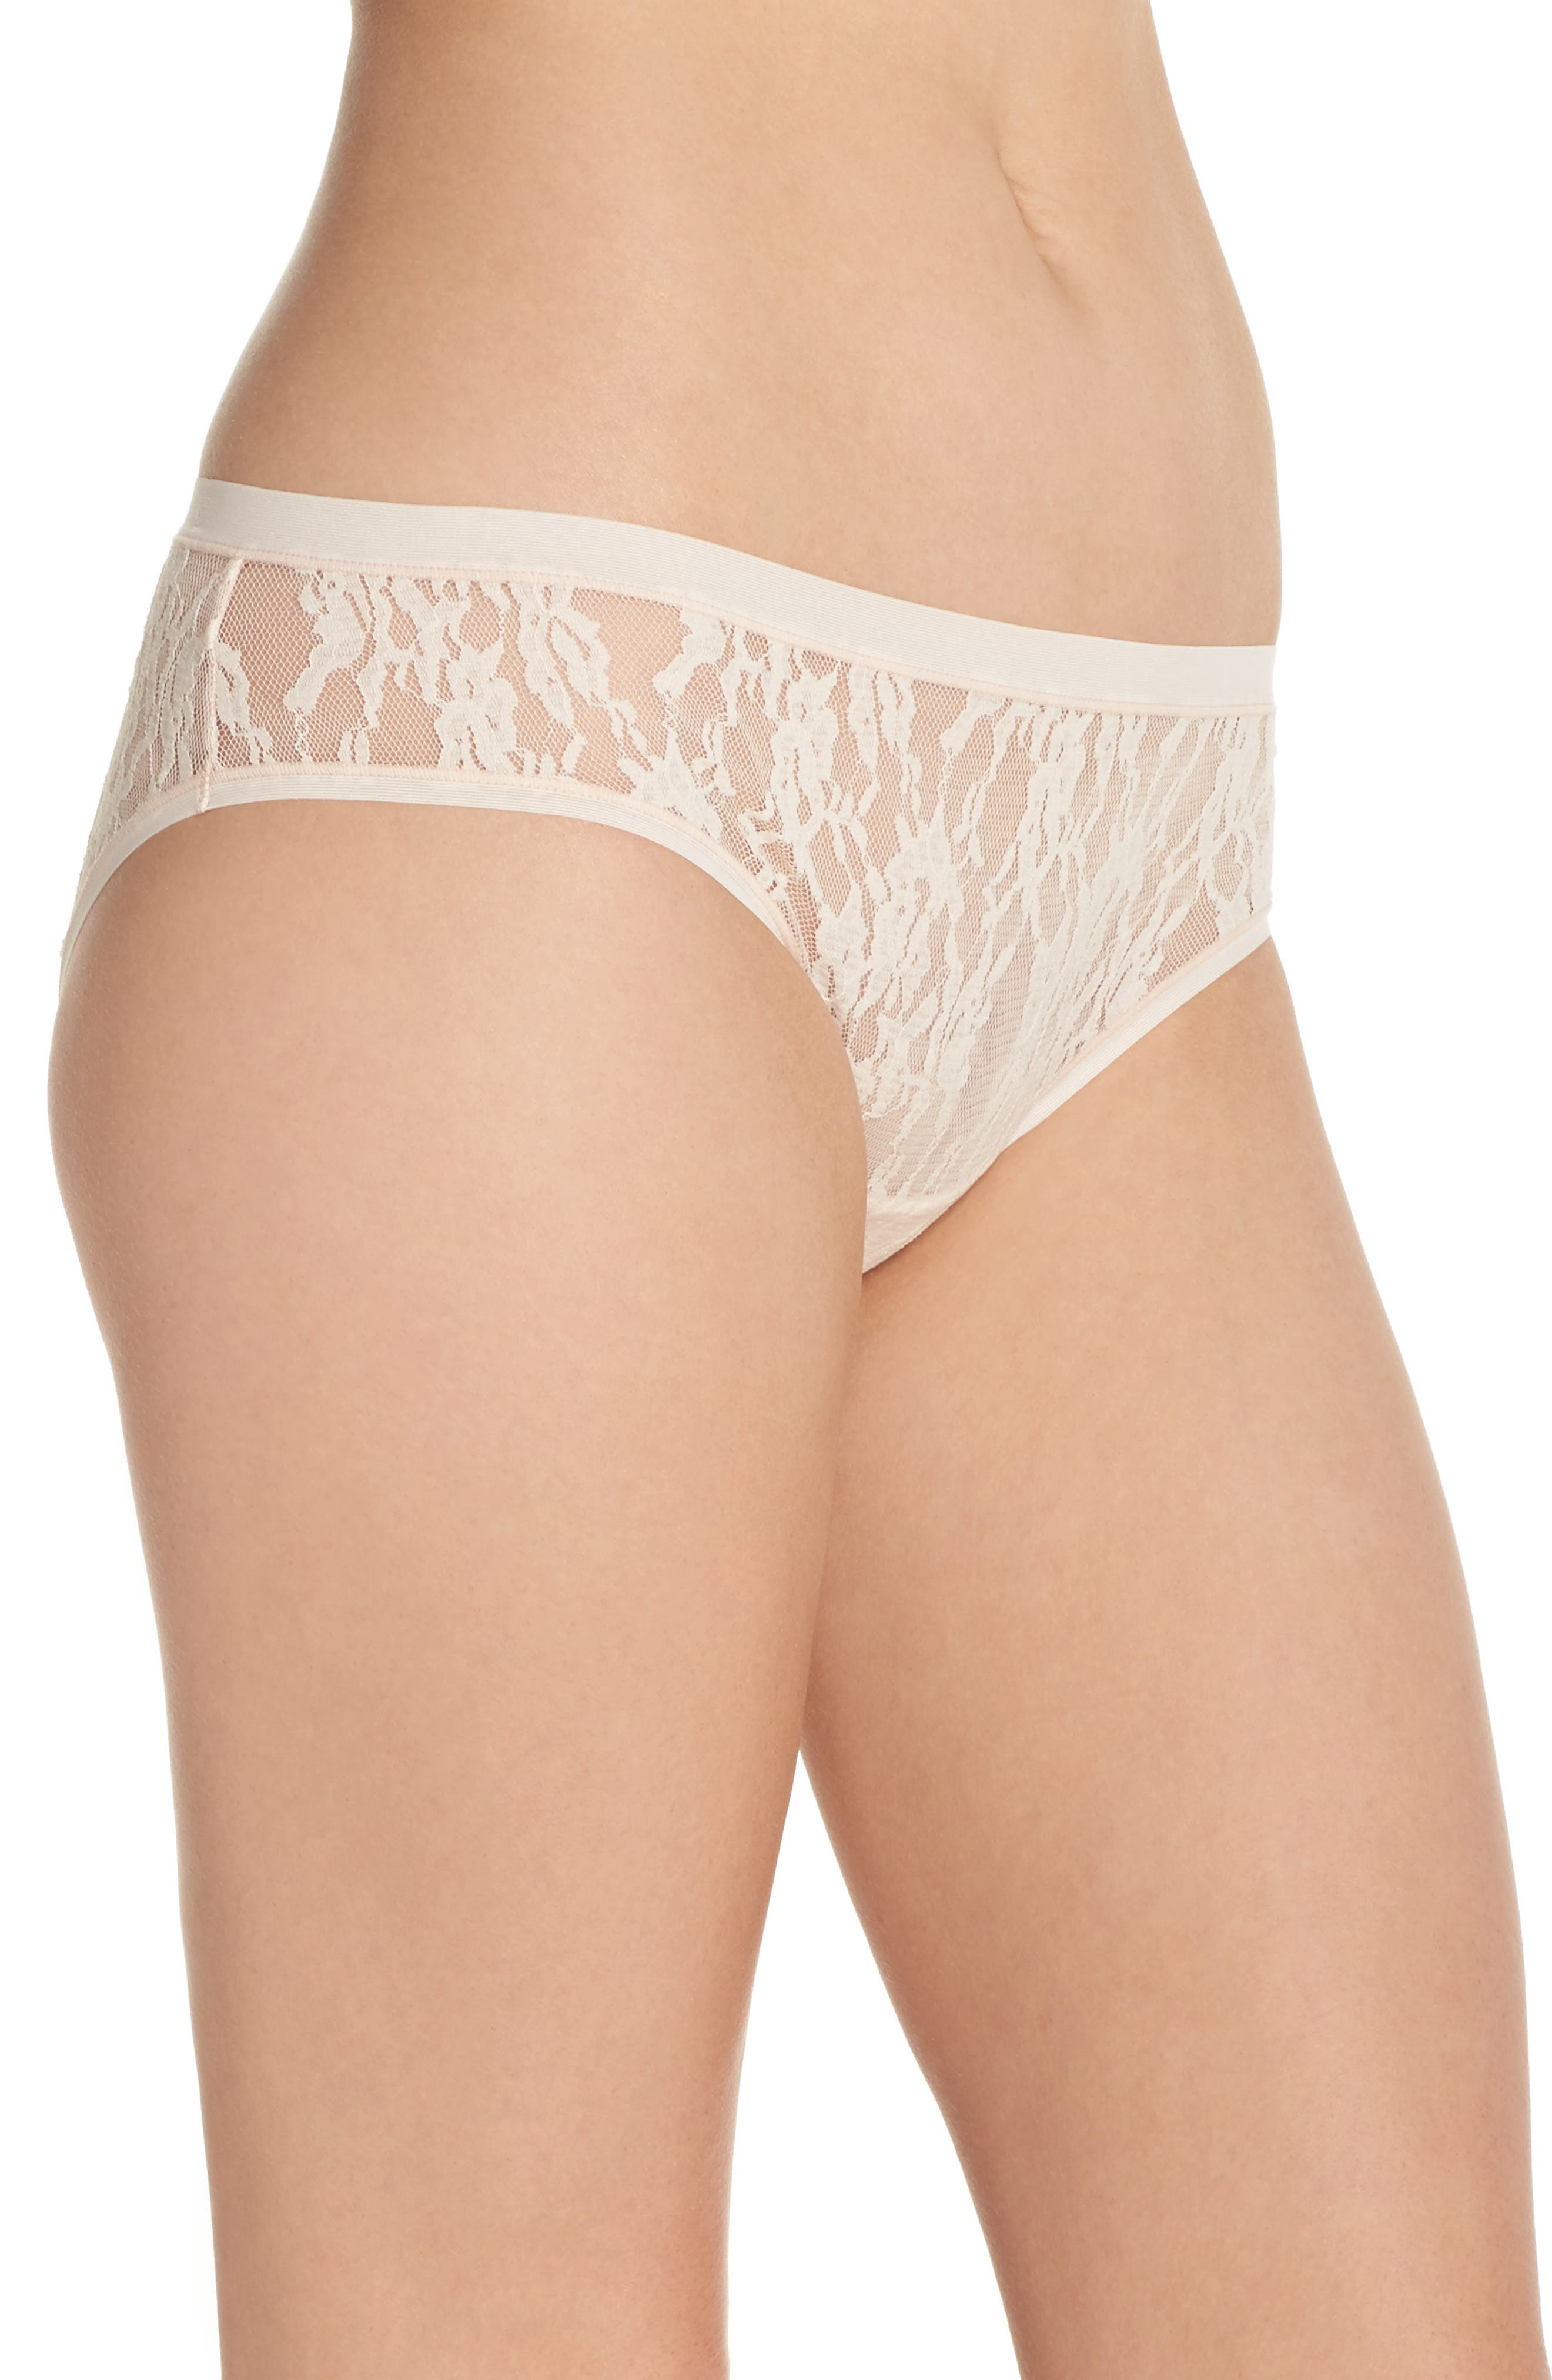 Bliss Desire Lace Hipster Briefs,                             Alternate thumbnail 3, color,                             Cashmere